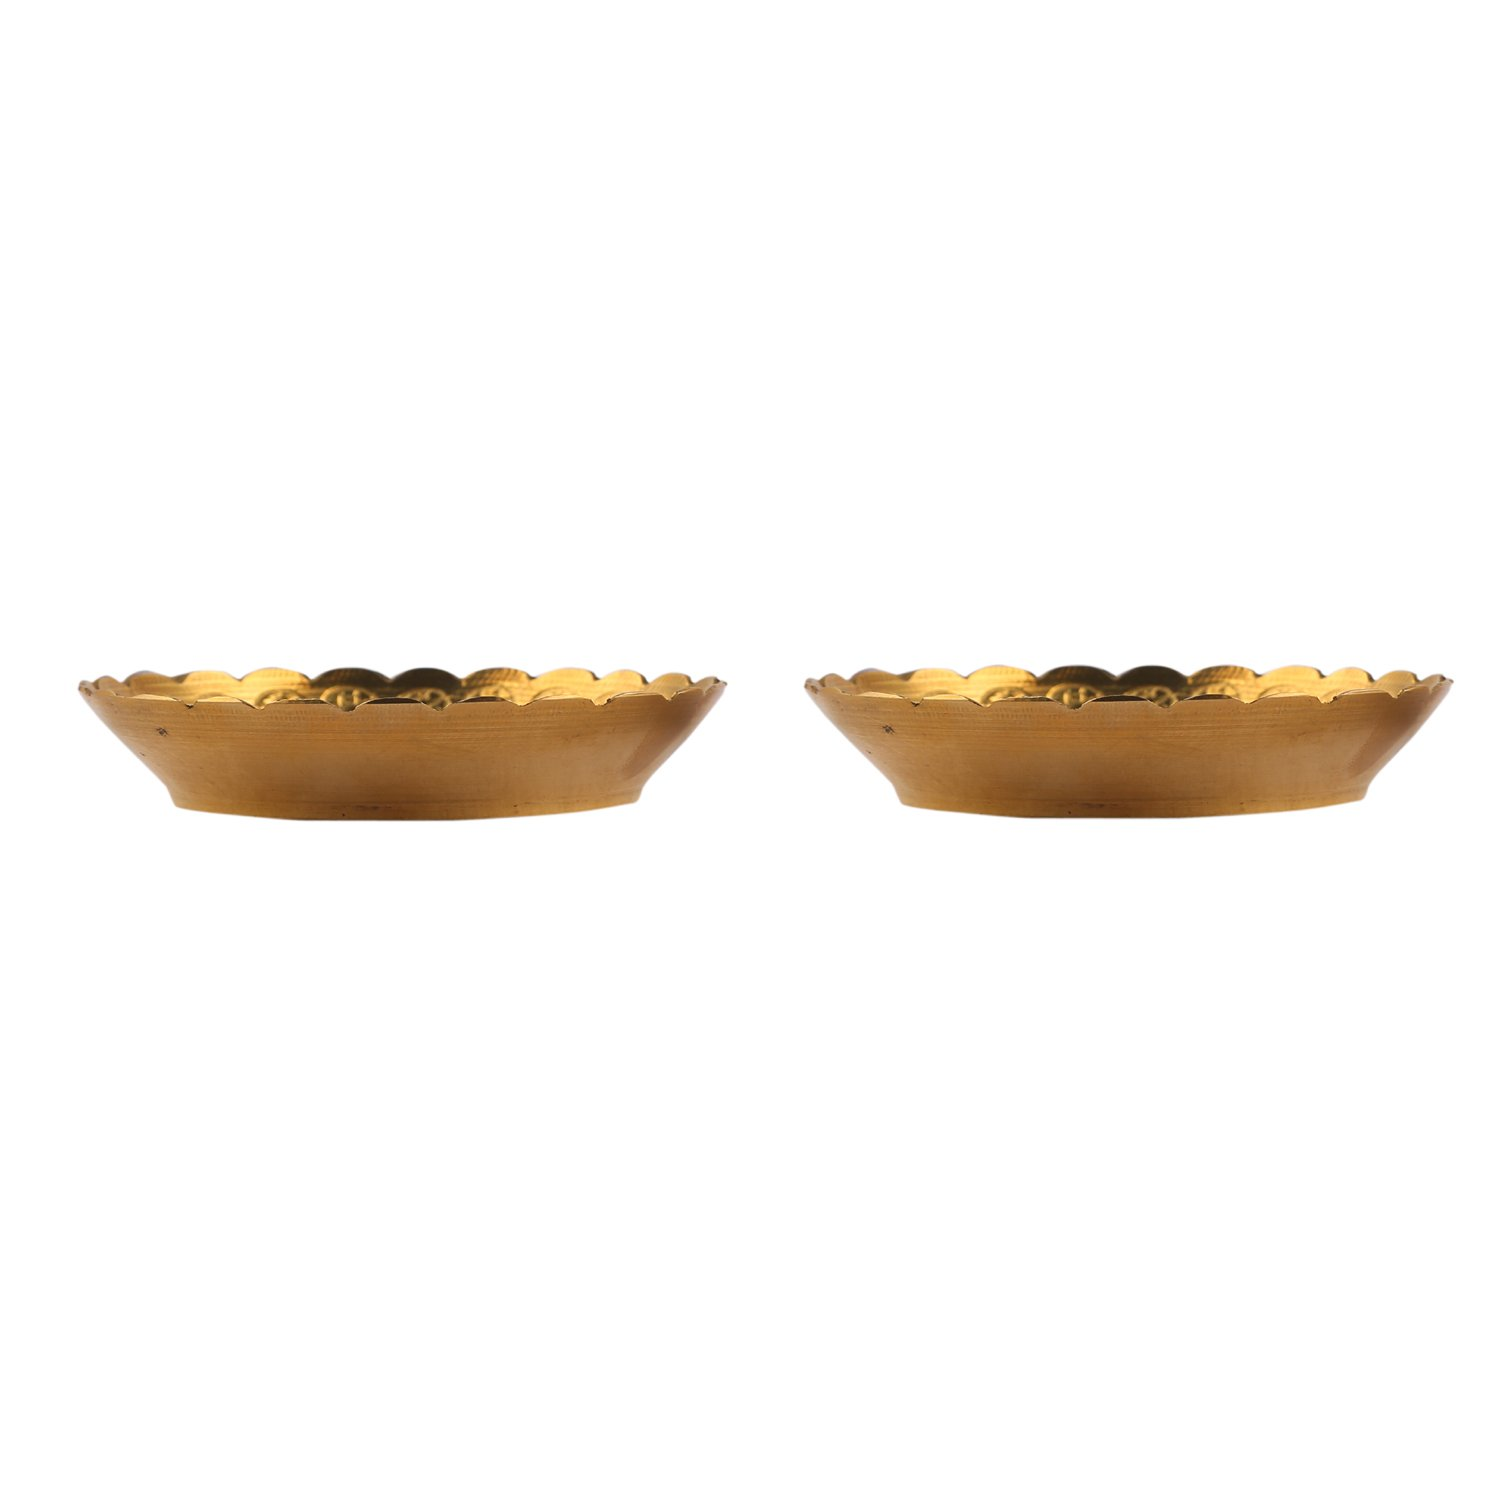 Aatm Brass Embossed Designed Puja Plate in Pair Best for Home /& Office Decoration /& Gift Purpose Handicraft 3.5 Inch /